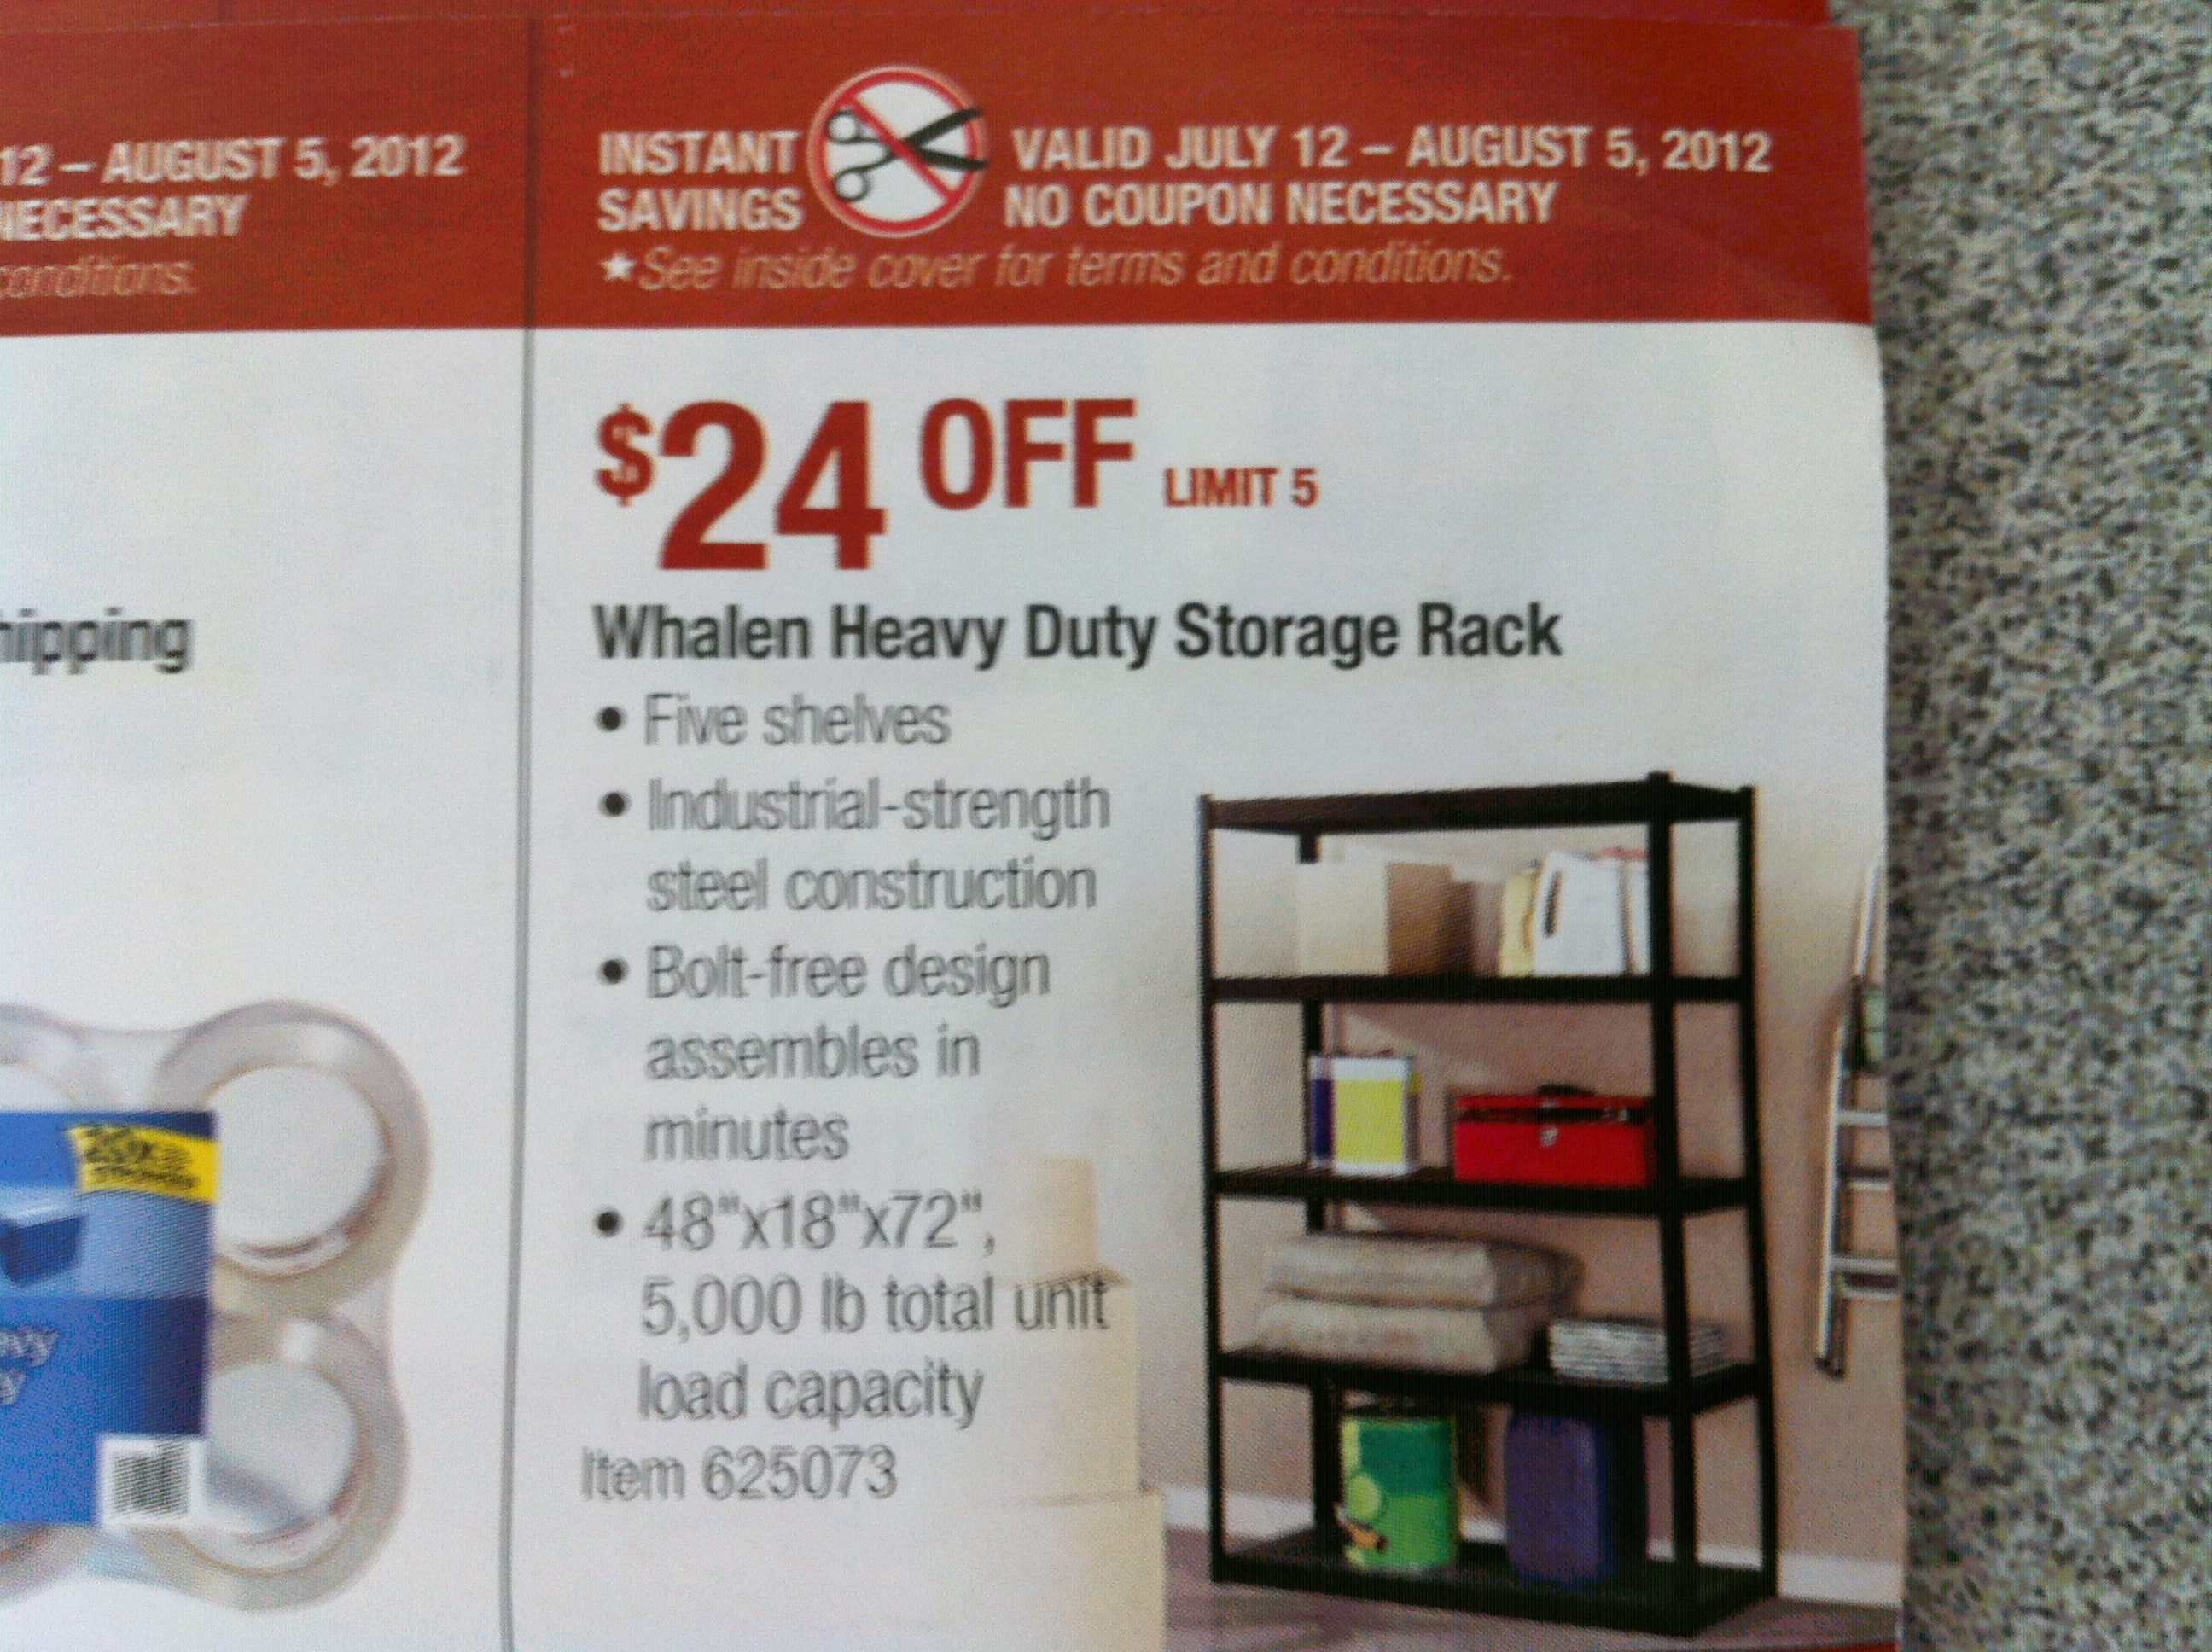 Whalen Heavy Duty Storage Rack at Costco (B&M only) $40 July 12 - August 5